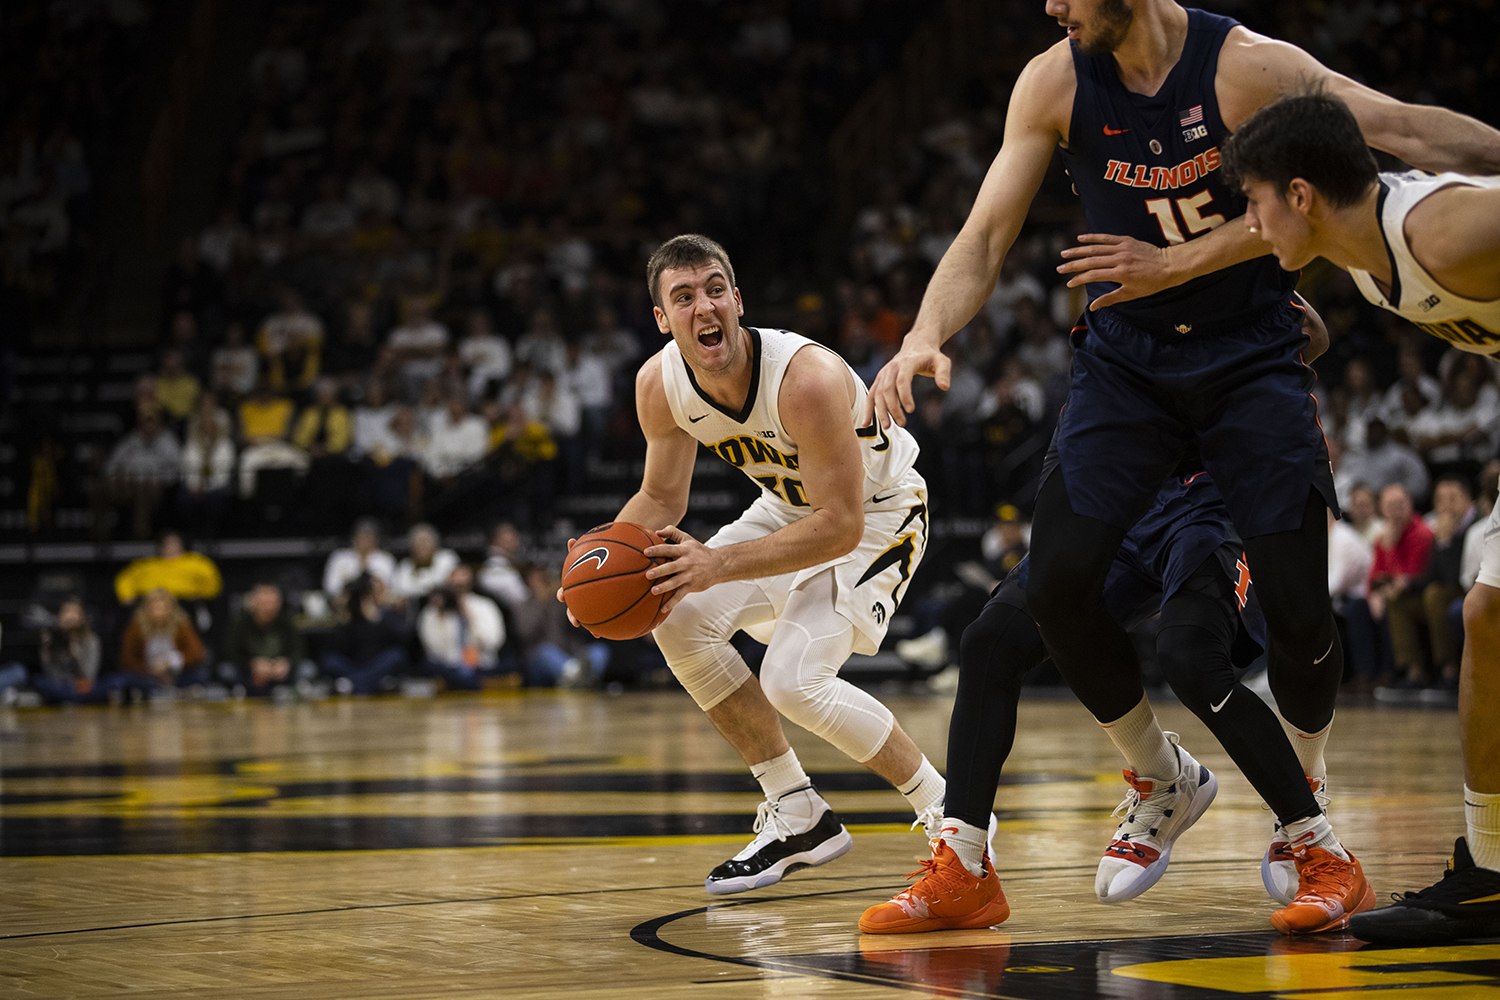 Iowa+guard+Connor+McCaffery+looks+to+pass+the+ball+during+the+Iowa%2FIllinois+men%27s+basketball+game+at+Carver-Hawkeye+Arena+on+Sunday%2C+January+20%2C+2019.+The+Hawkeyes+defeated+the+Fighting+Illini%2C+95-71.+